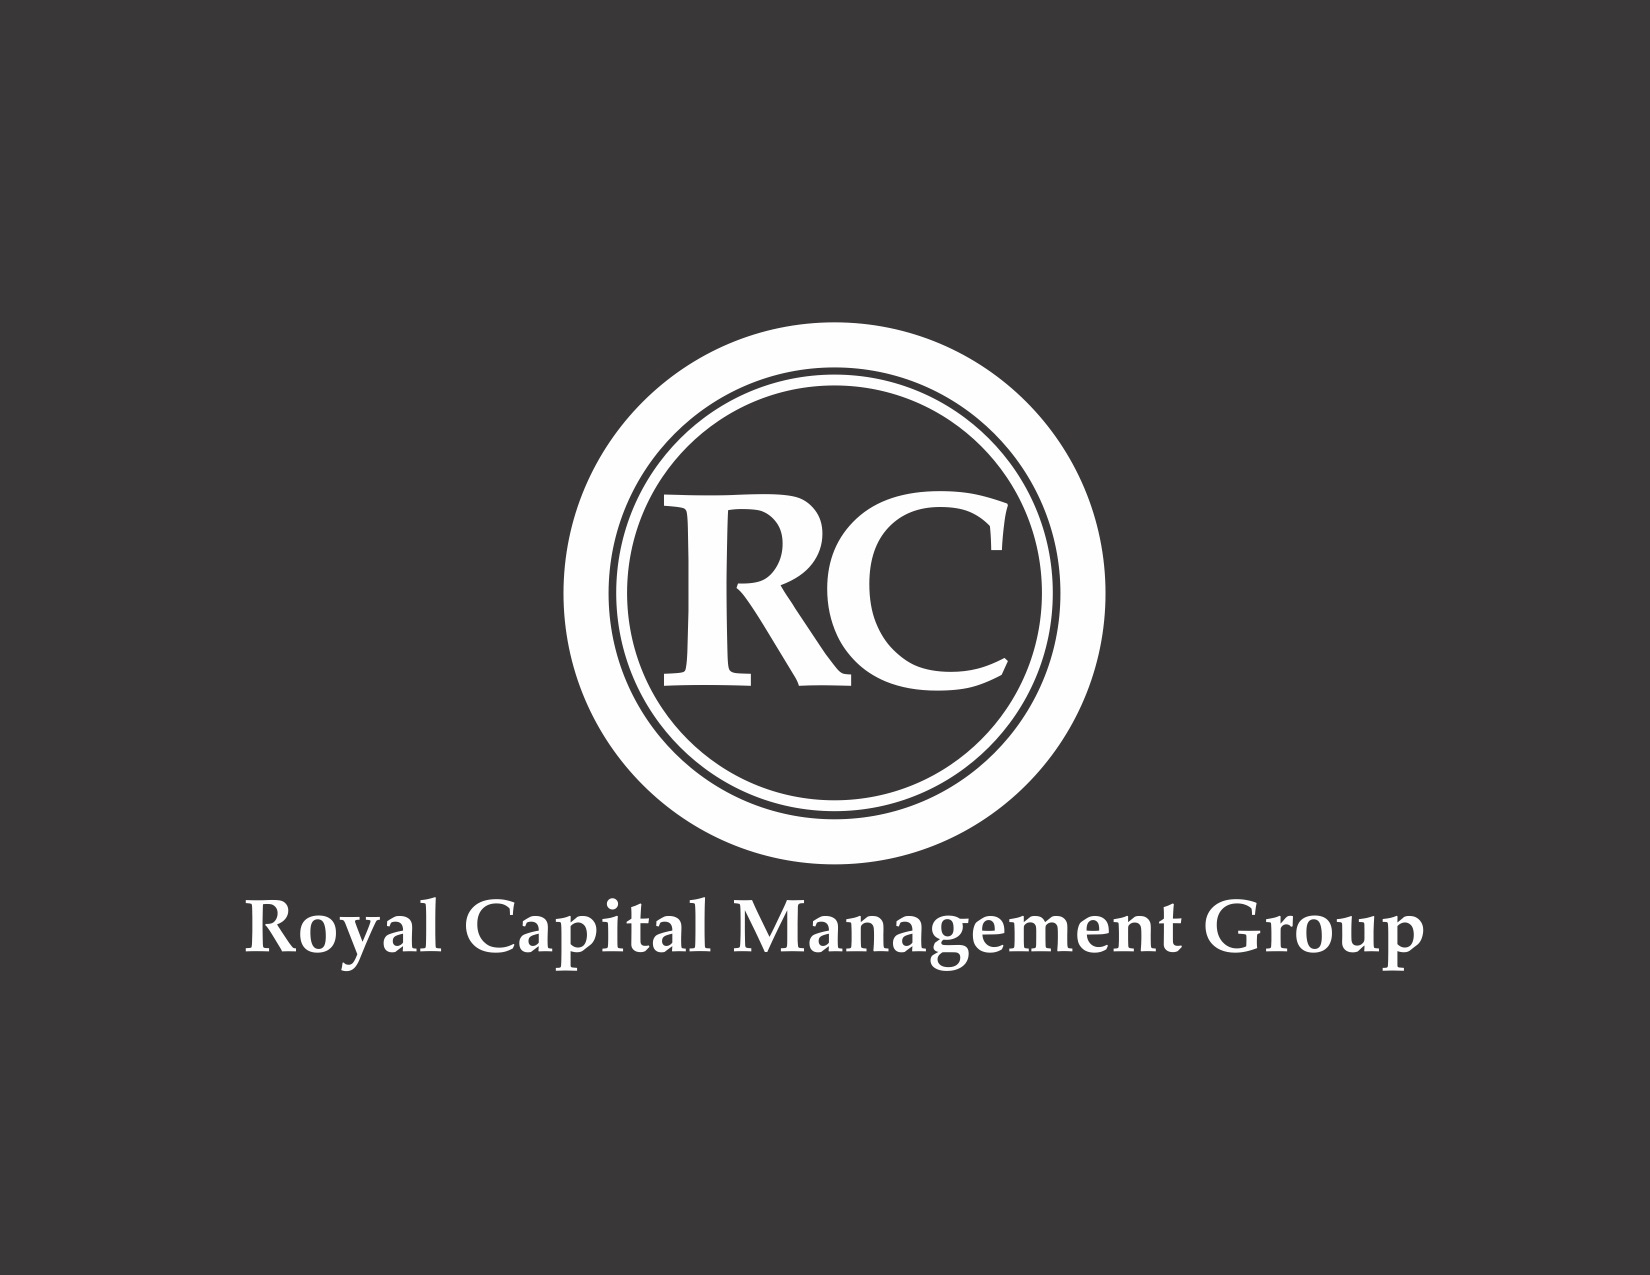 ROYAL CAPITAL MANAGEMENT GROUP